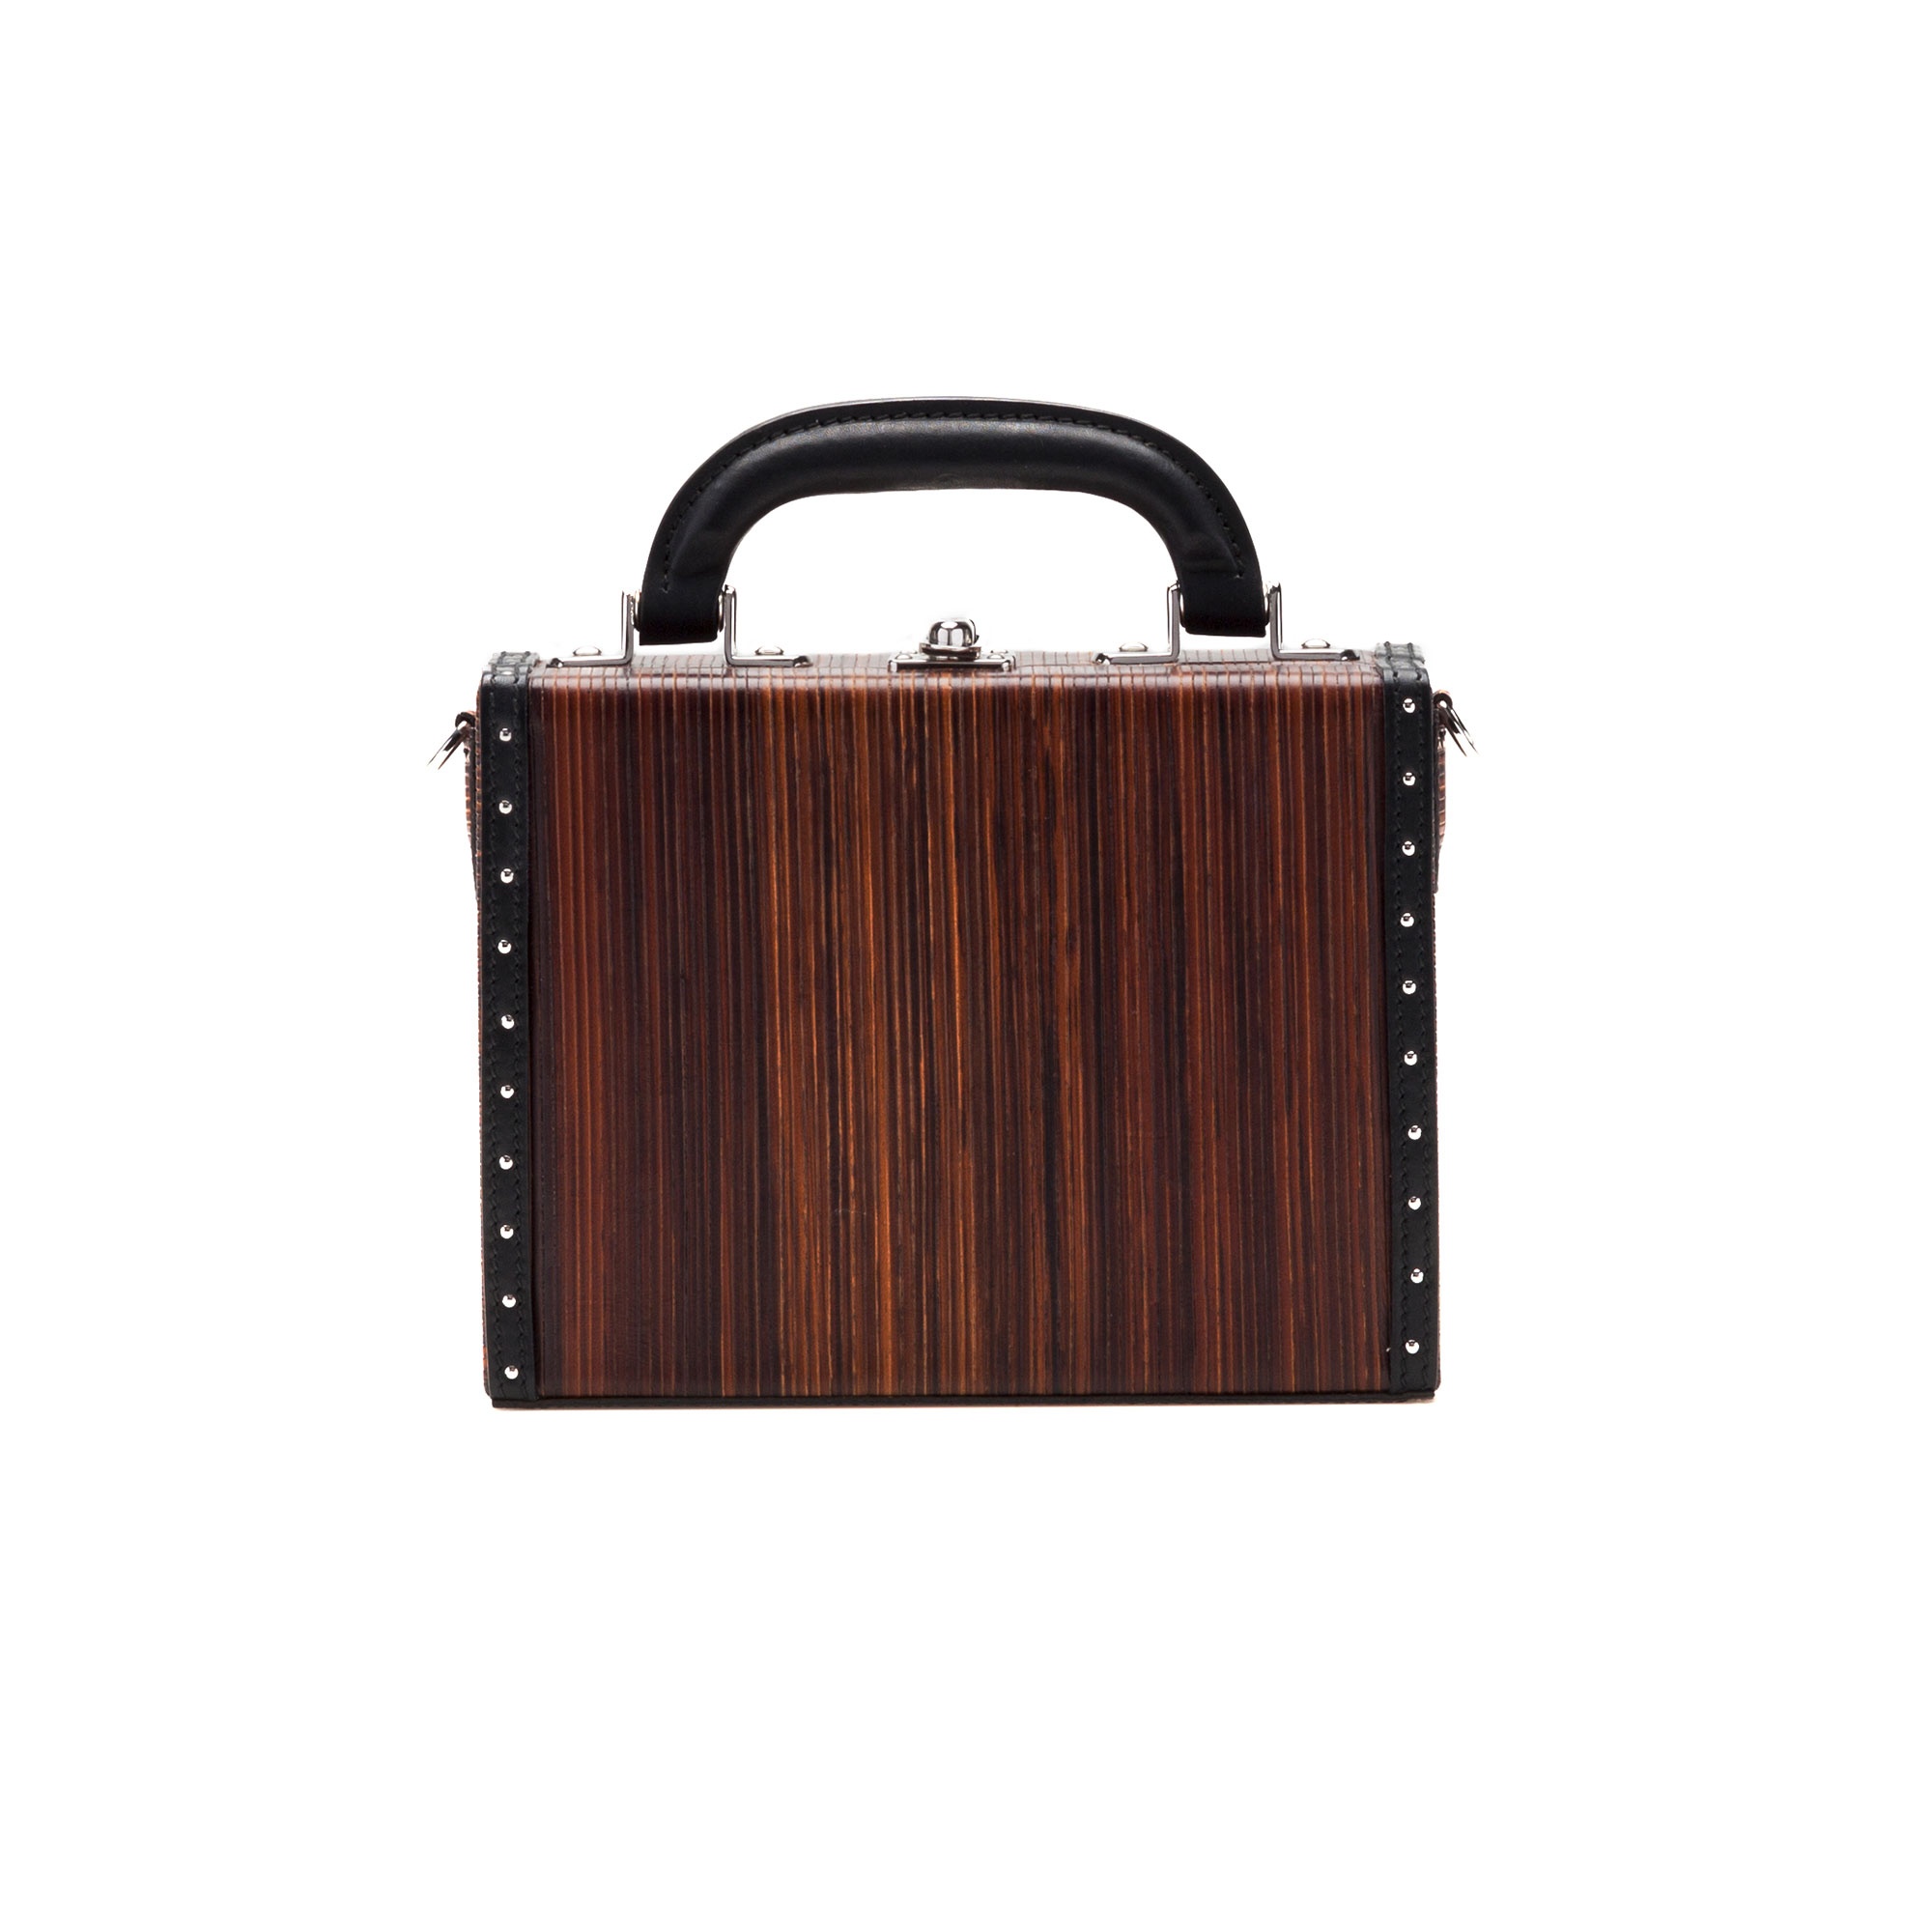 The leather color french calf, wood leather Mini Squared Bertoncina bag by Bertoni 1949 01